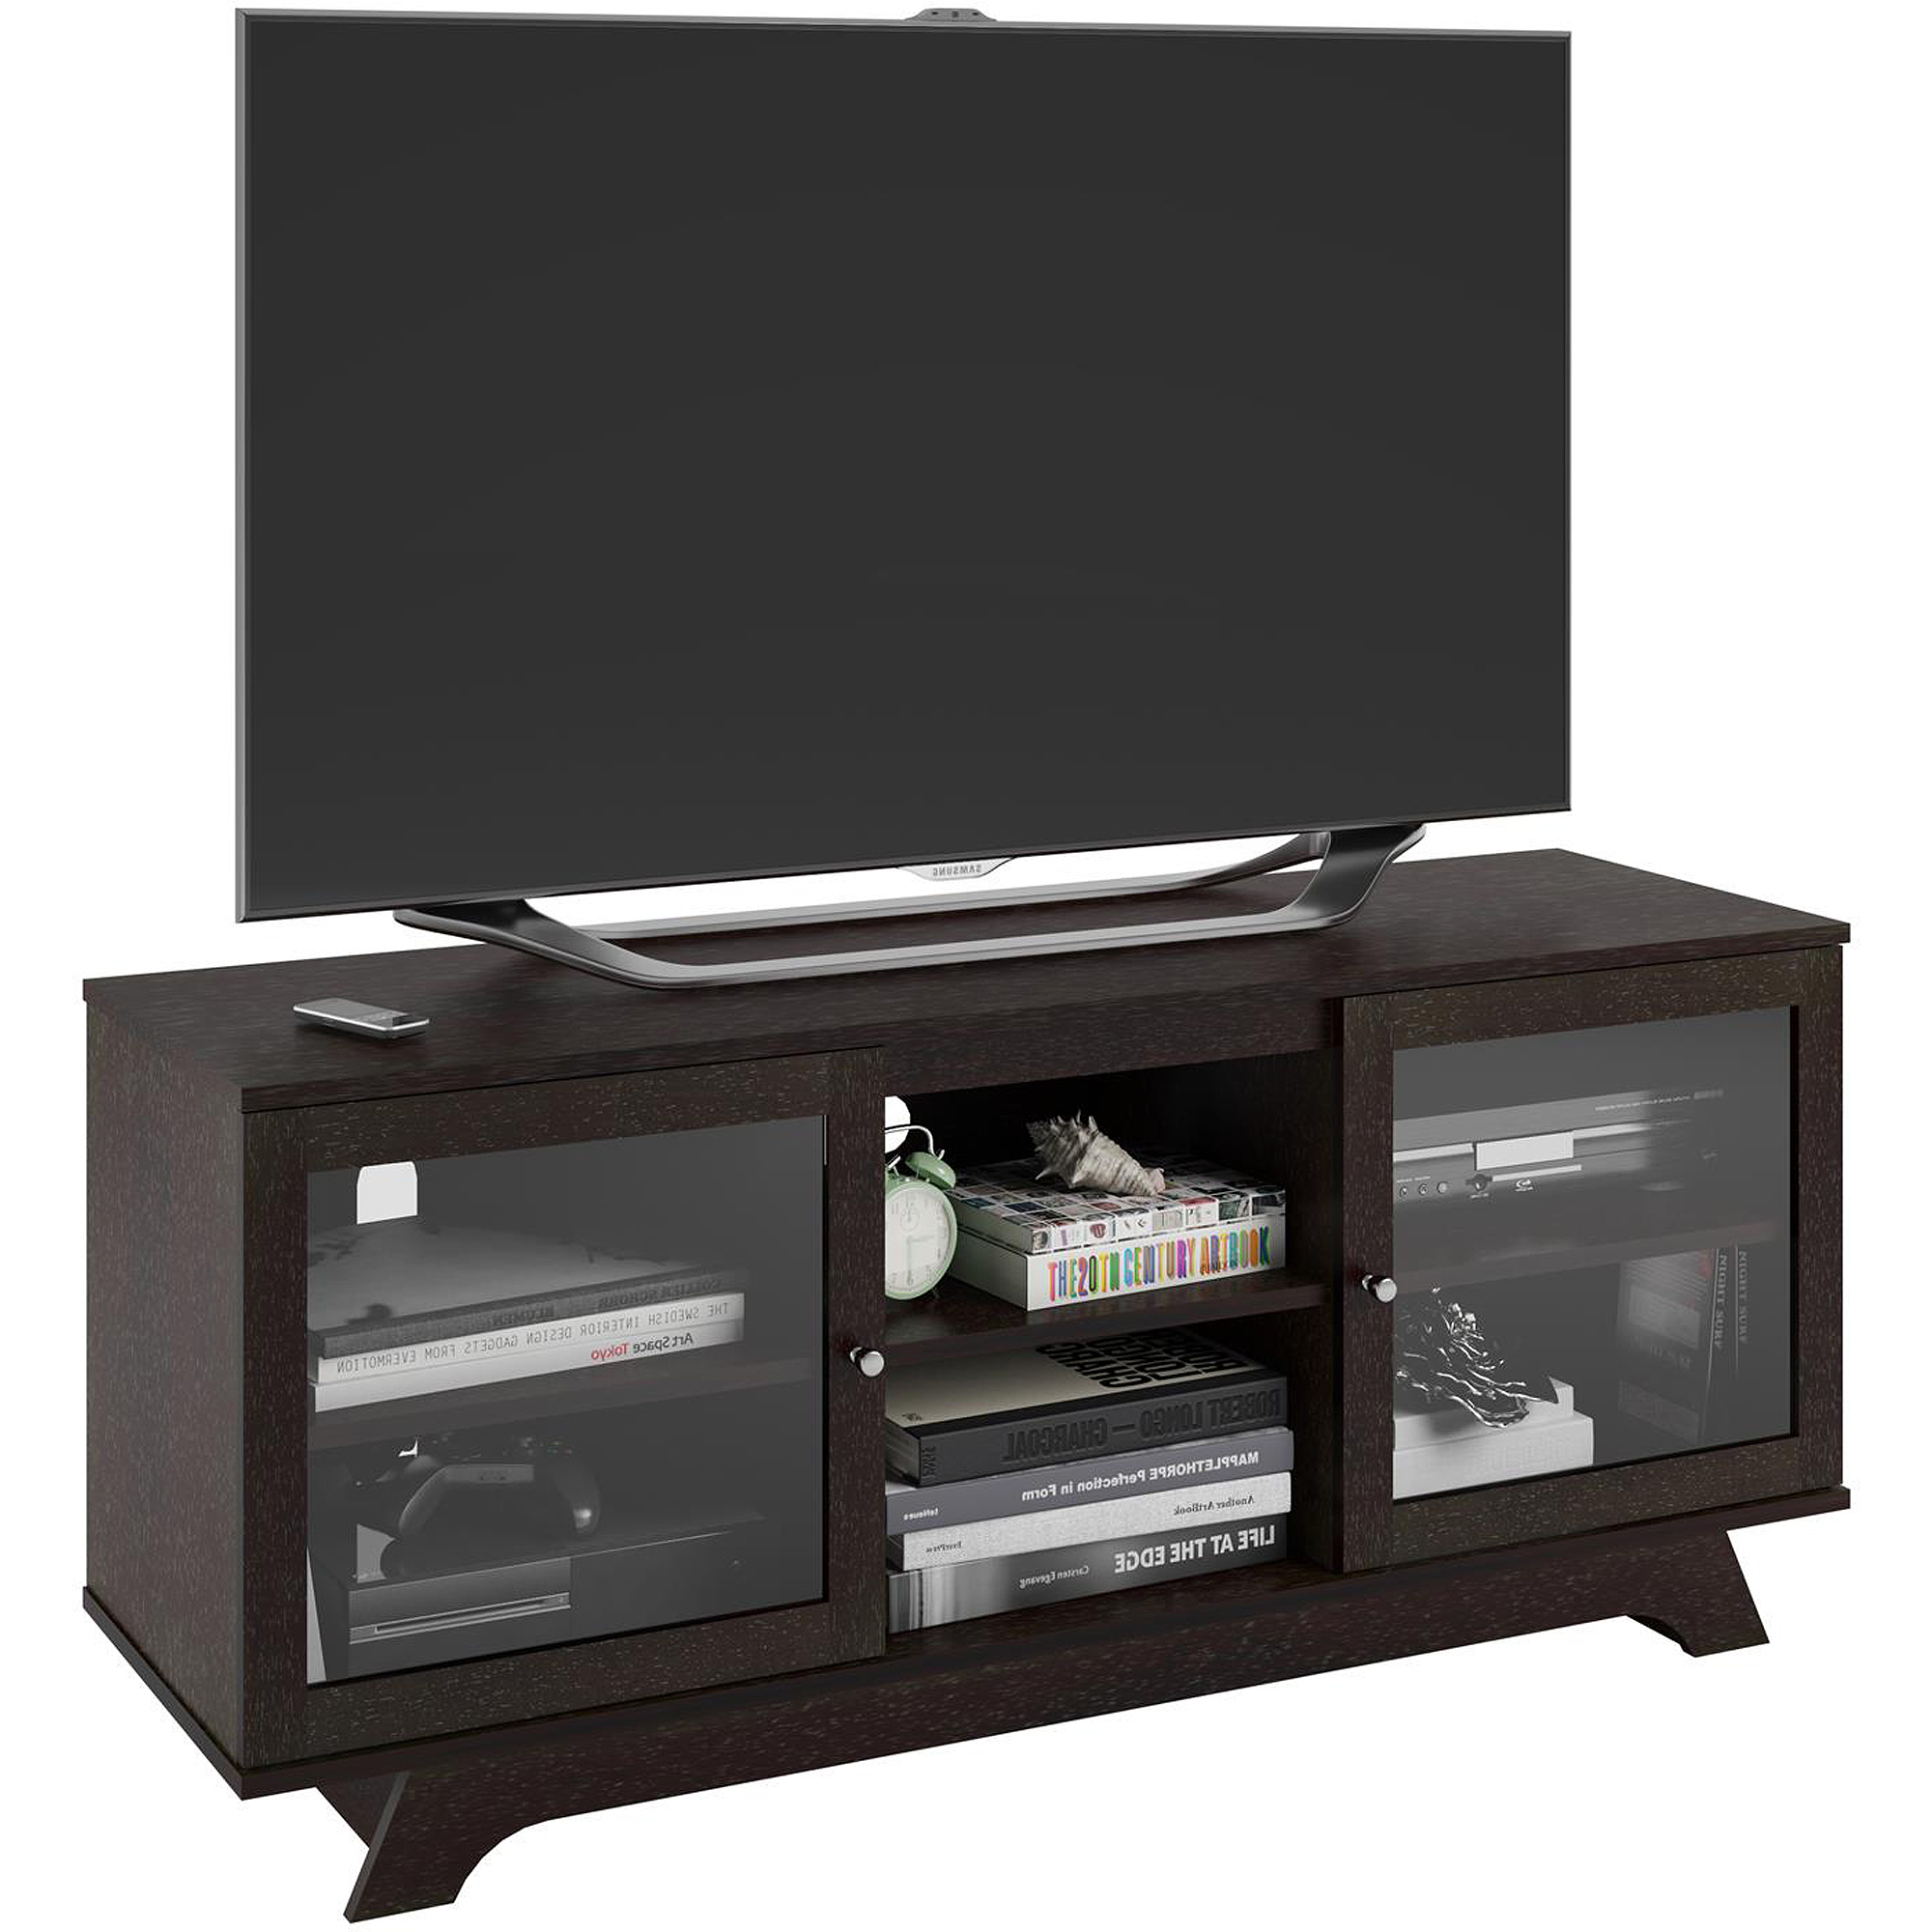 "Famous Wood Tv Stand With Glass Regarding Ameriwood Home Englewood Tv Stand For Tvs Up To 55"", Espresso (Gallery 11 of 20)"